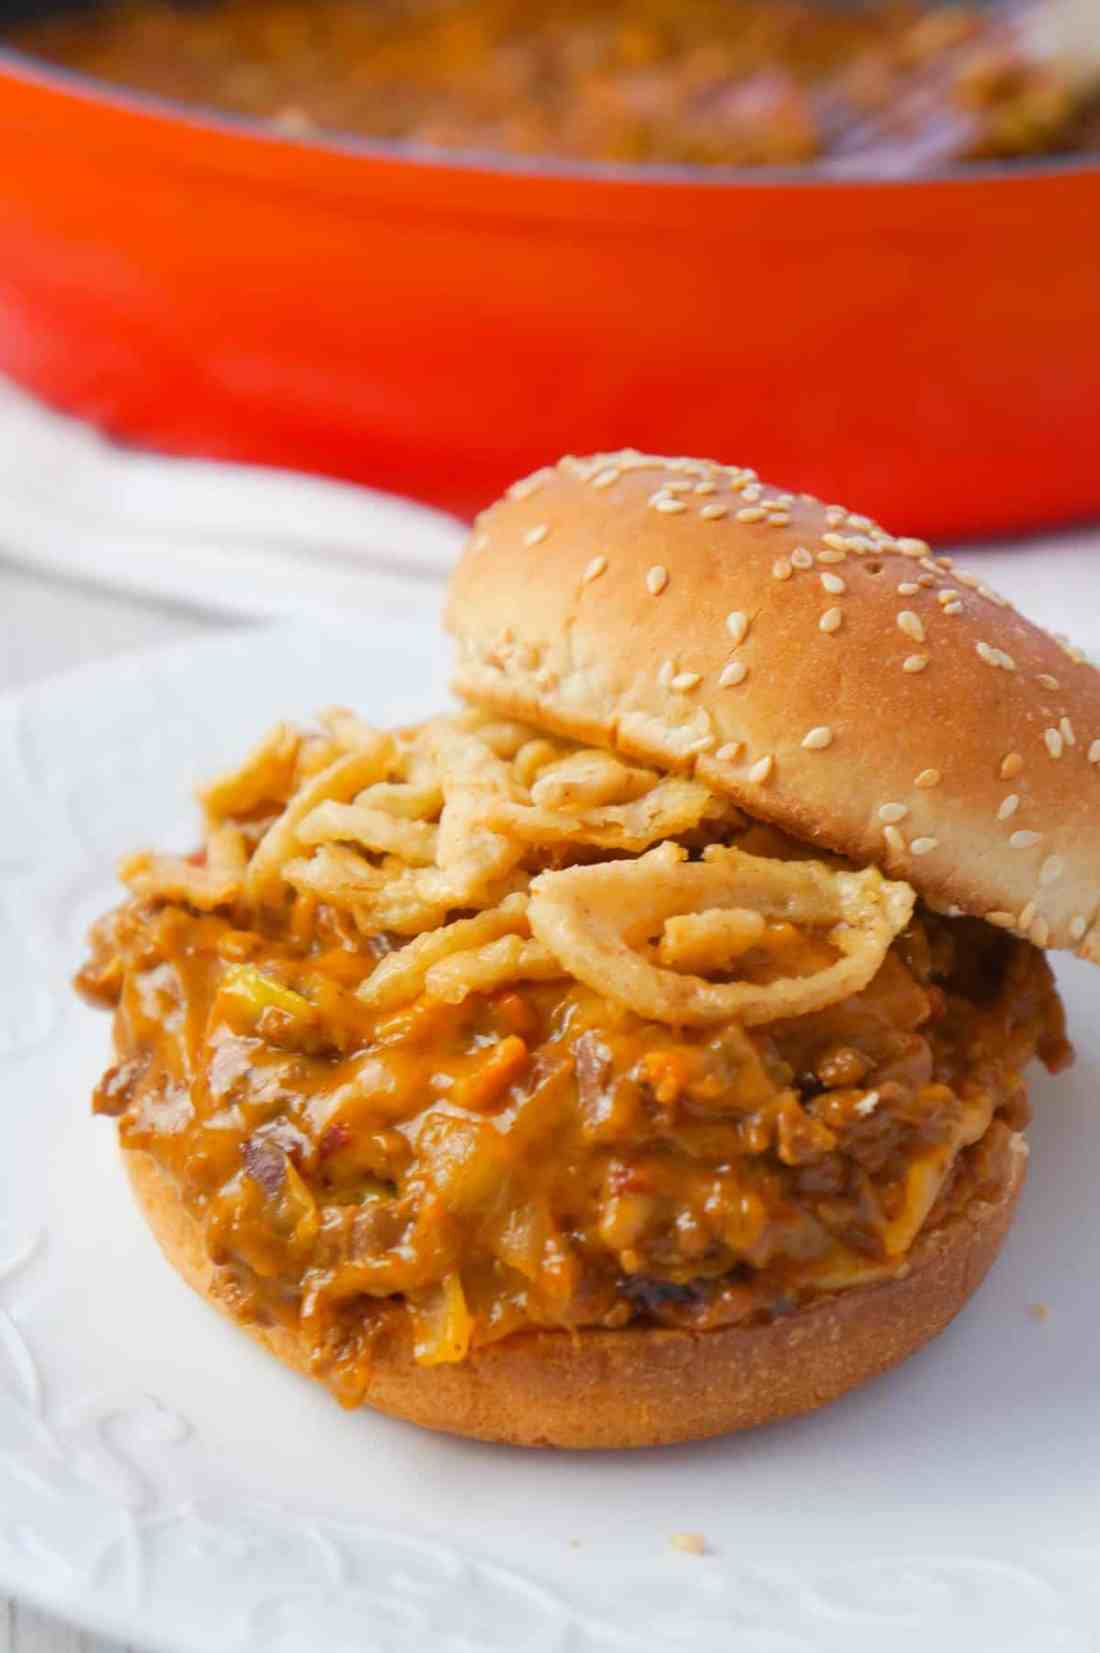 BBQ Bacon Cheeseburger Sloppy Joes are a delicious ground beef dinner loaded with crumbled bacon, BBQ sauce, salsa con queso and cheddar cheese.